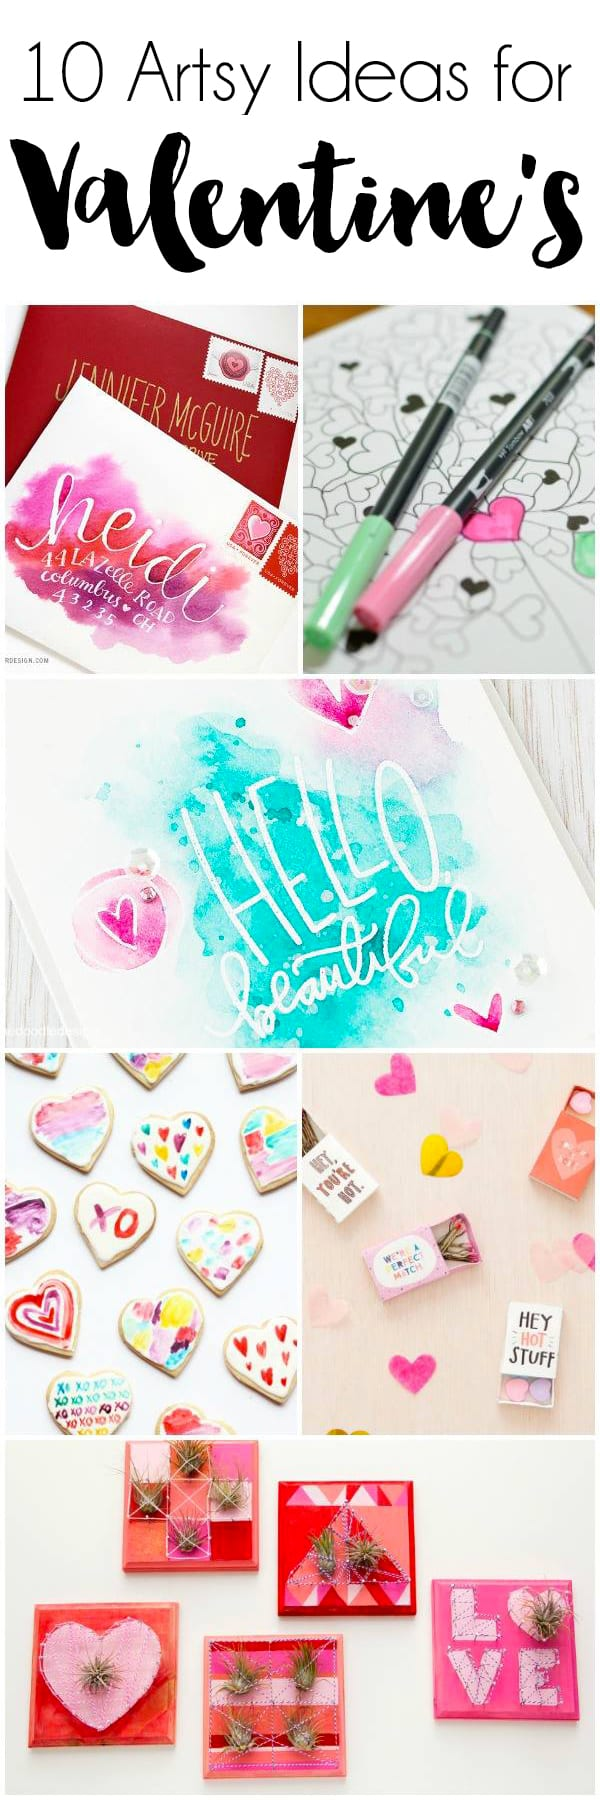 10 Artsy Valentine's Ideas. These adorable Artsy Valentine's Ideas are perfect for the holiday or any time of year you want to show someone a little love.